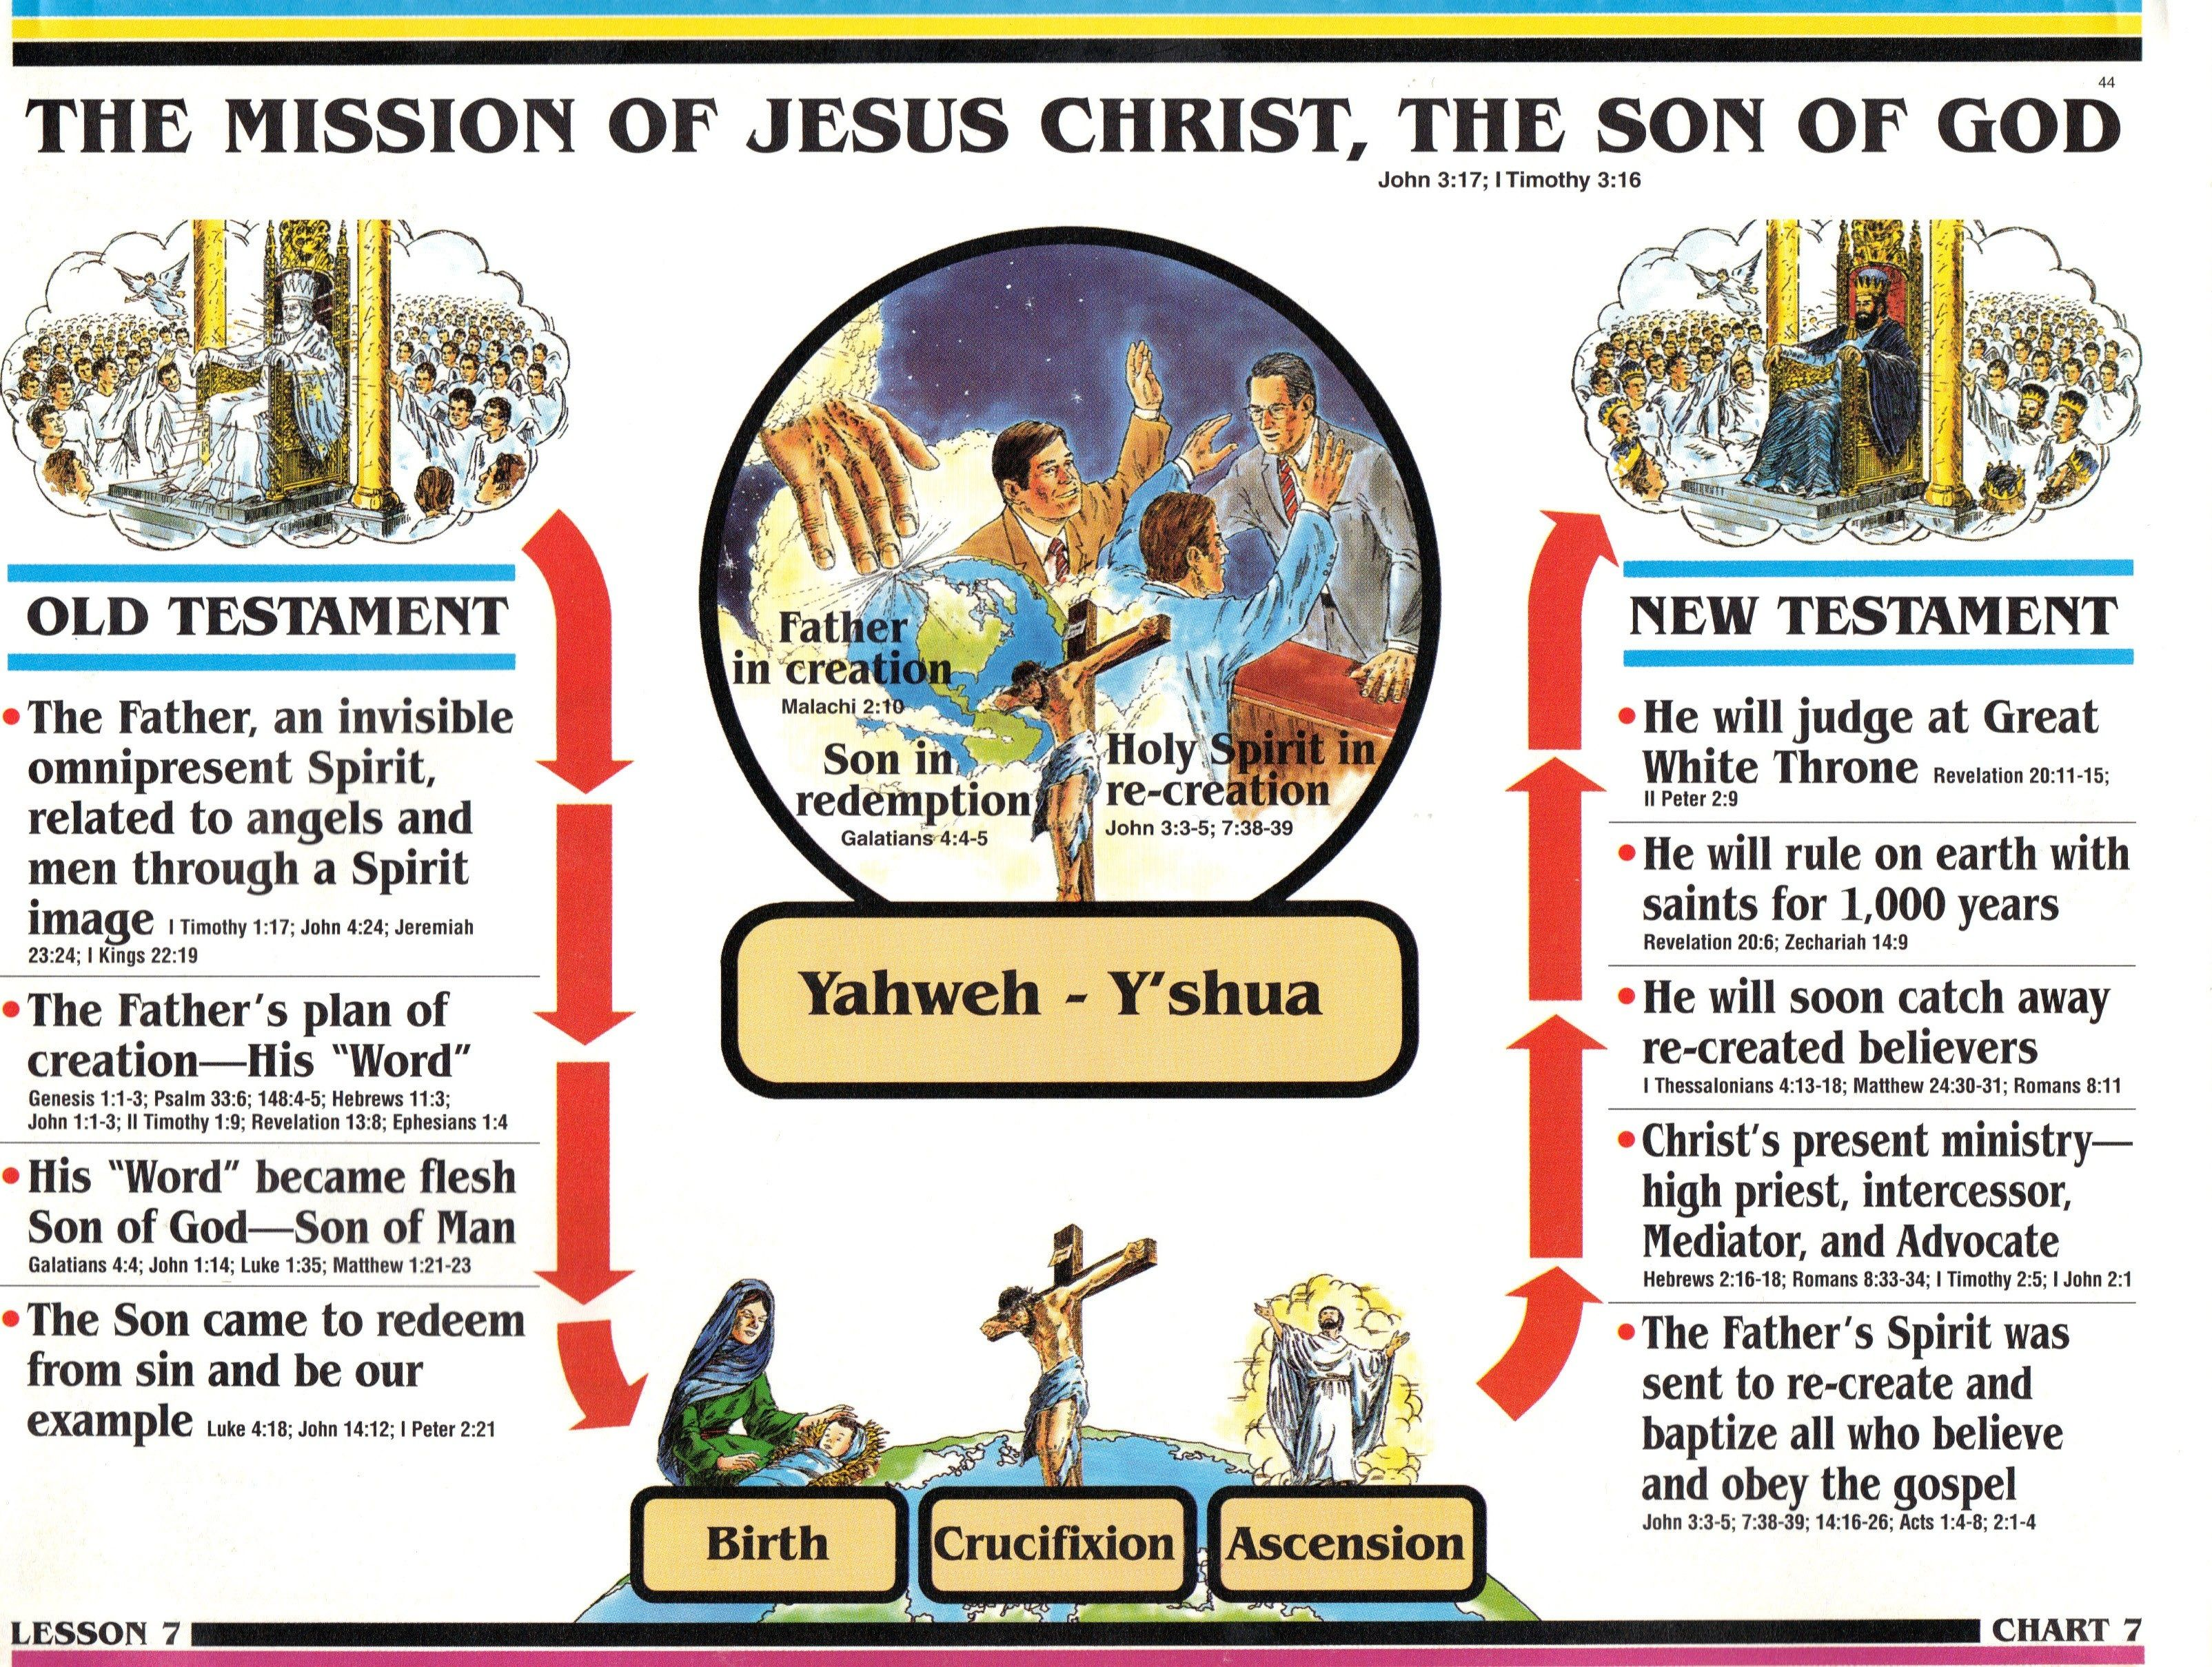 Search for truth the mission of jesus christ the son of god search for truth the mission of jesus christ the son of god nvjuhfo Image collections